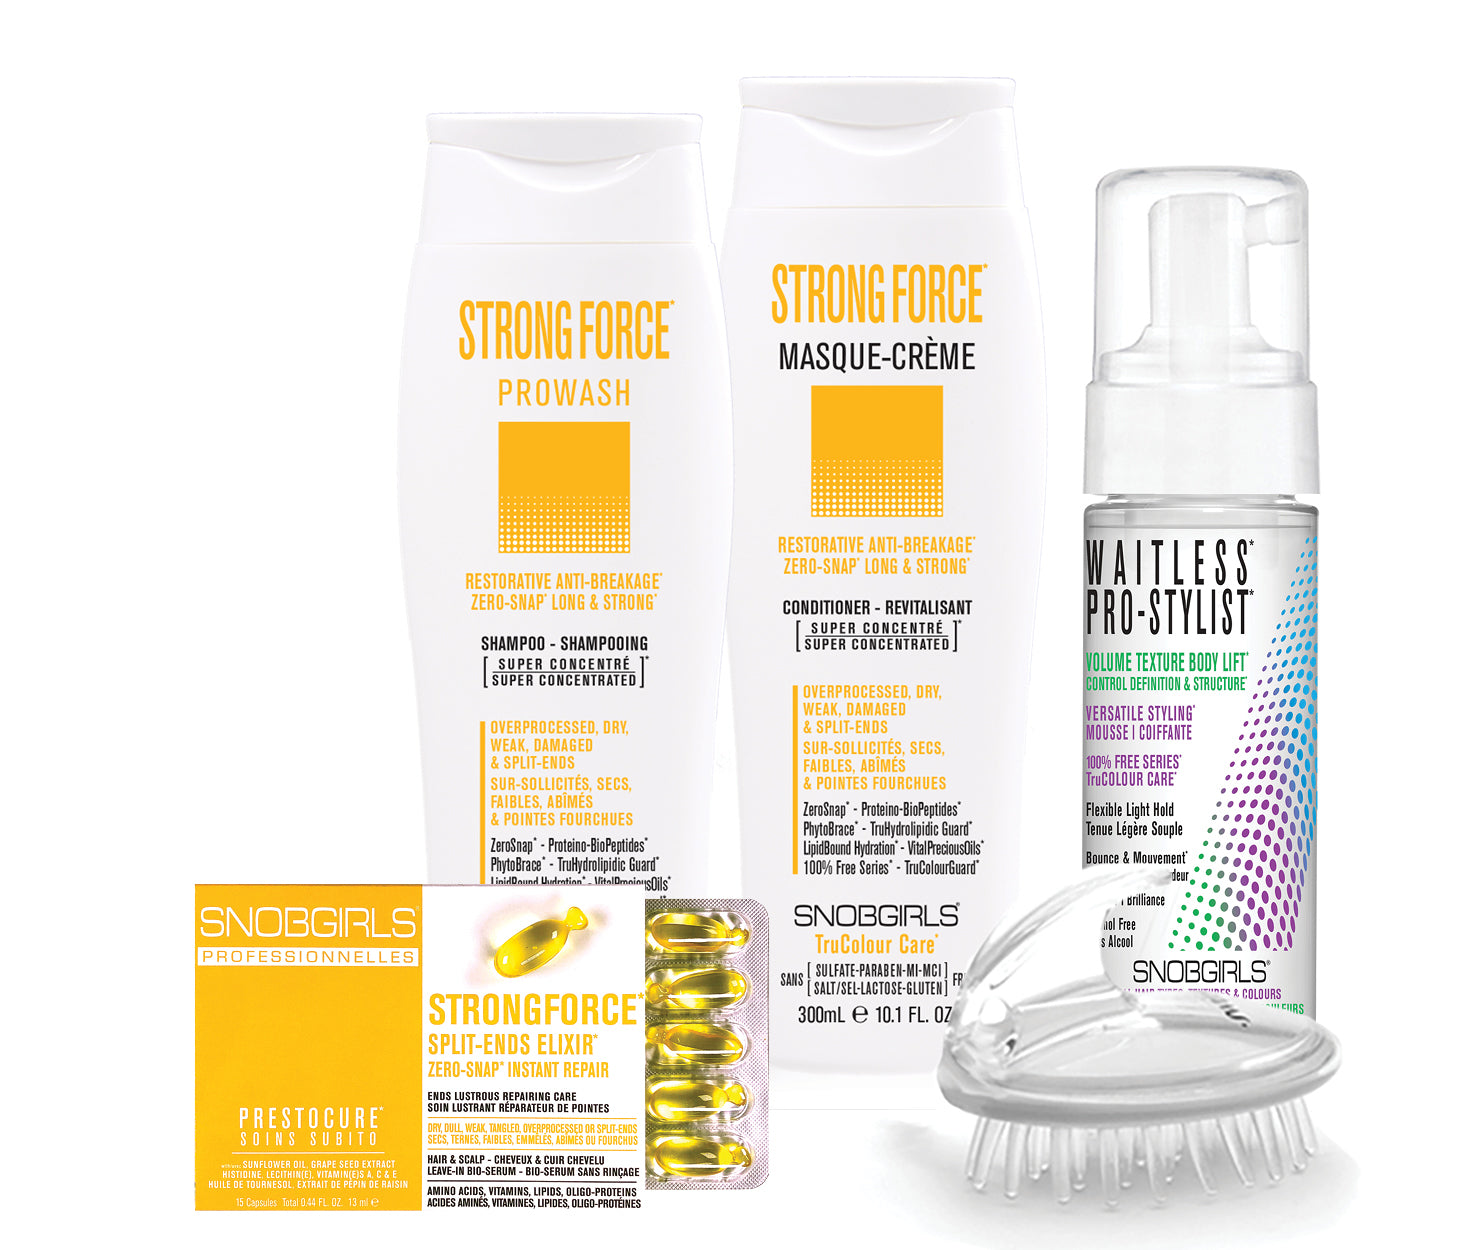 STRONGFORCE BOX RESTORATIVE ANTI-BREAKAGE Bundle